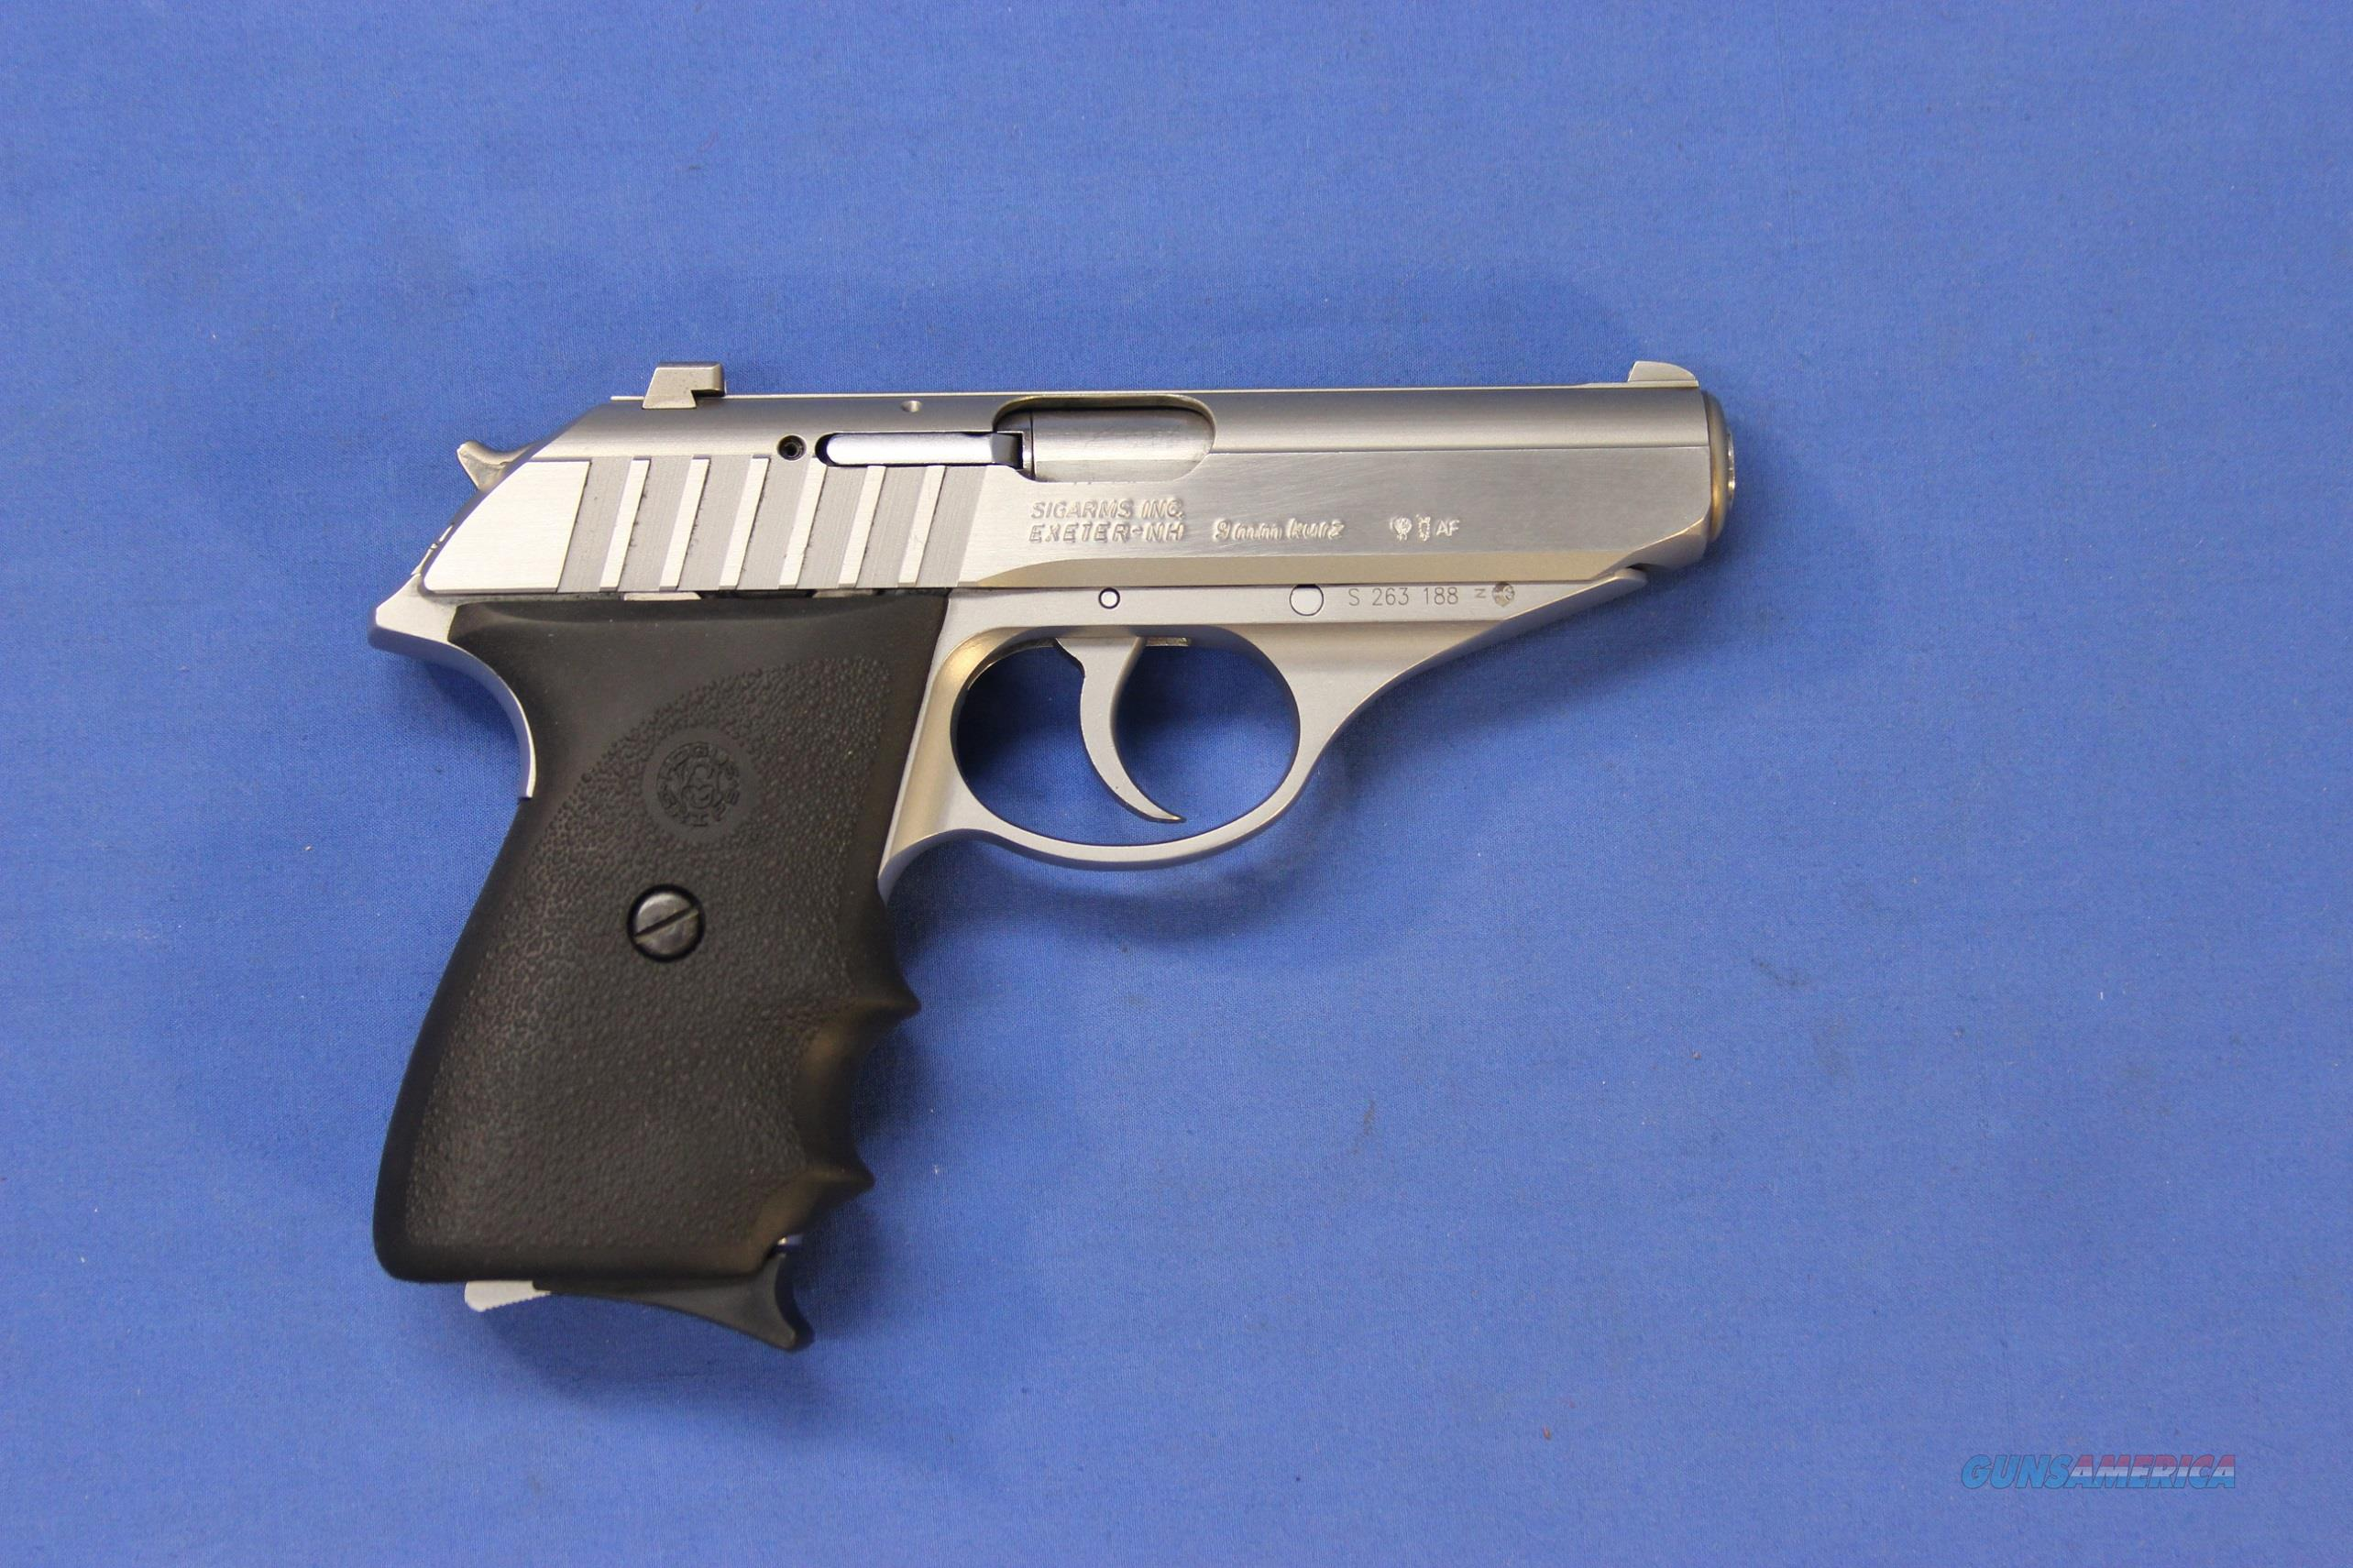 sig sauer p232 stainless 380 acp w box grips for sale